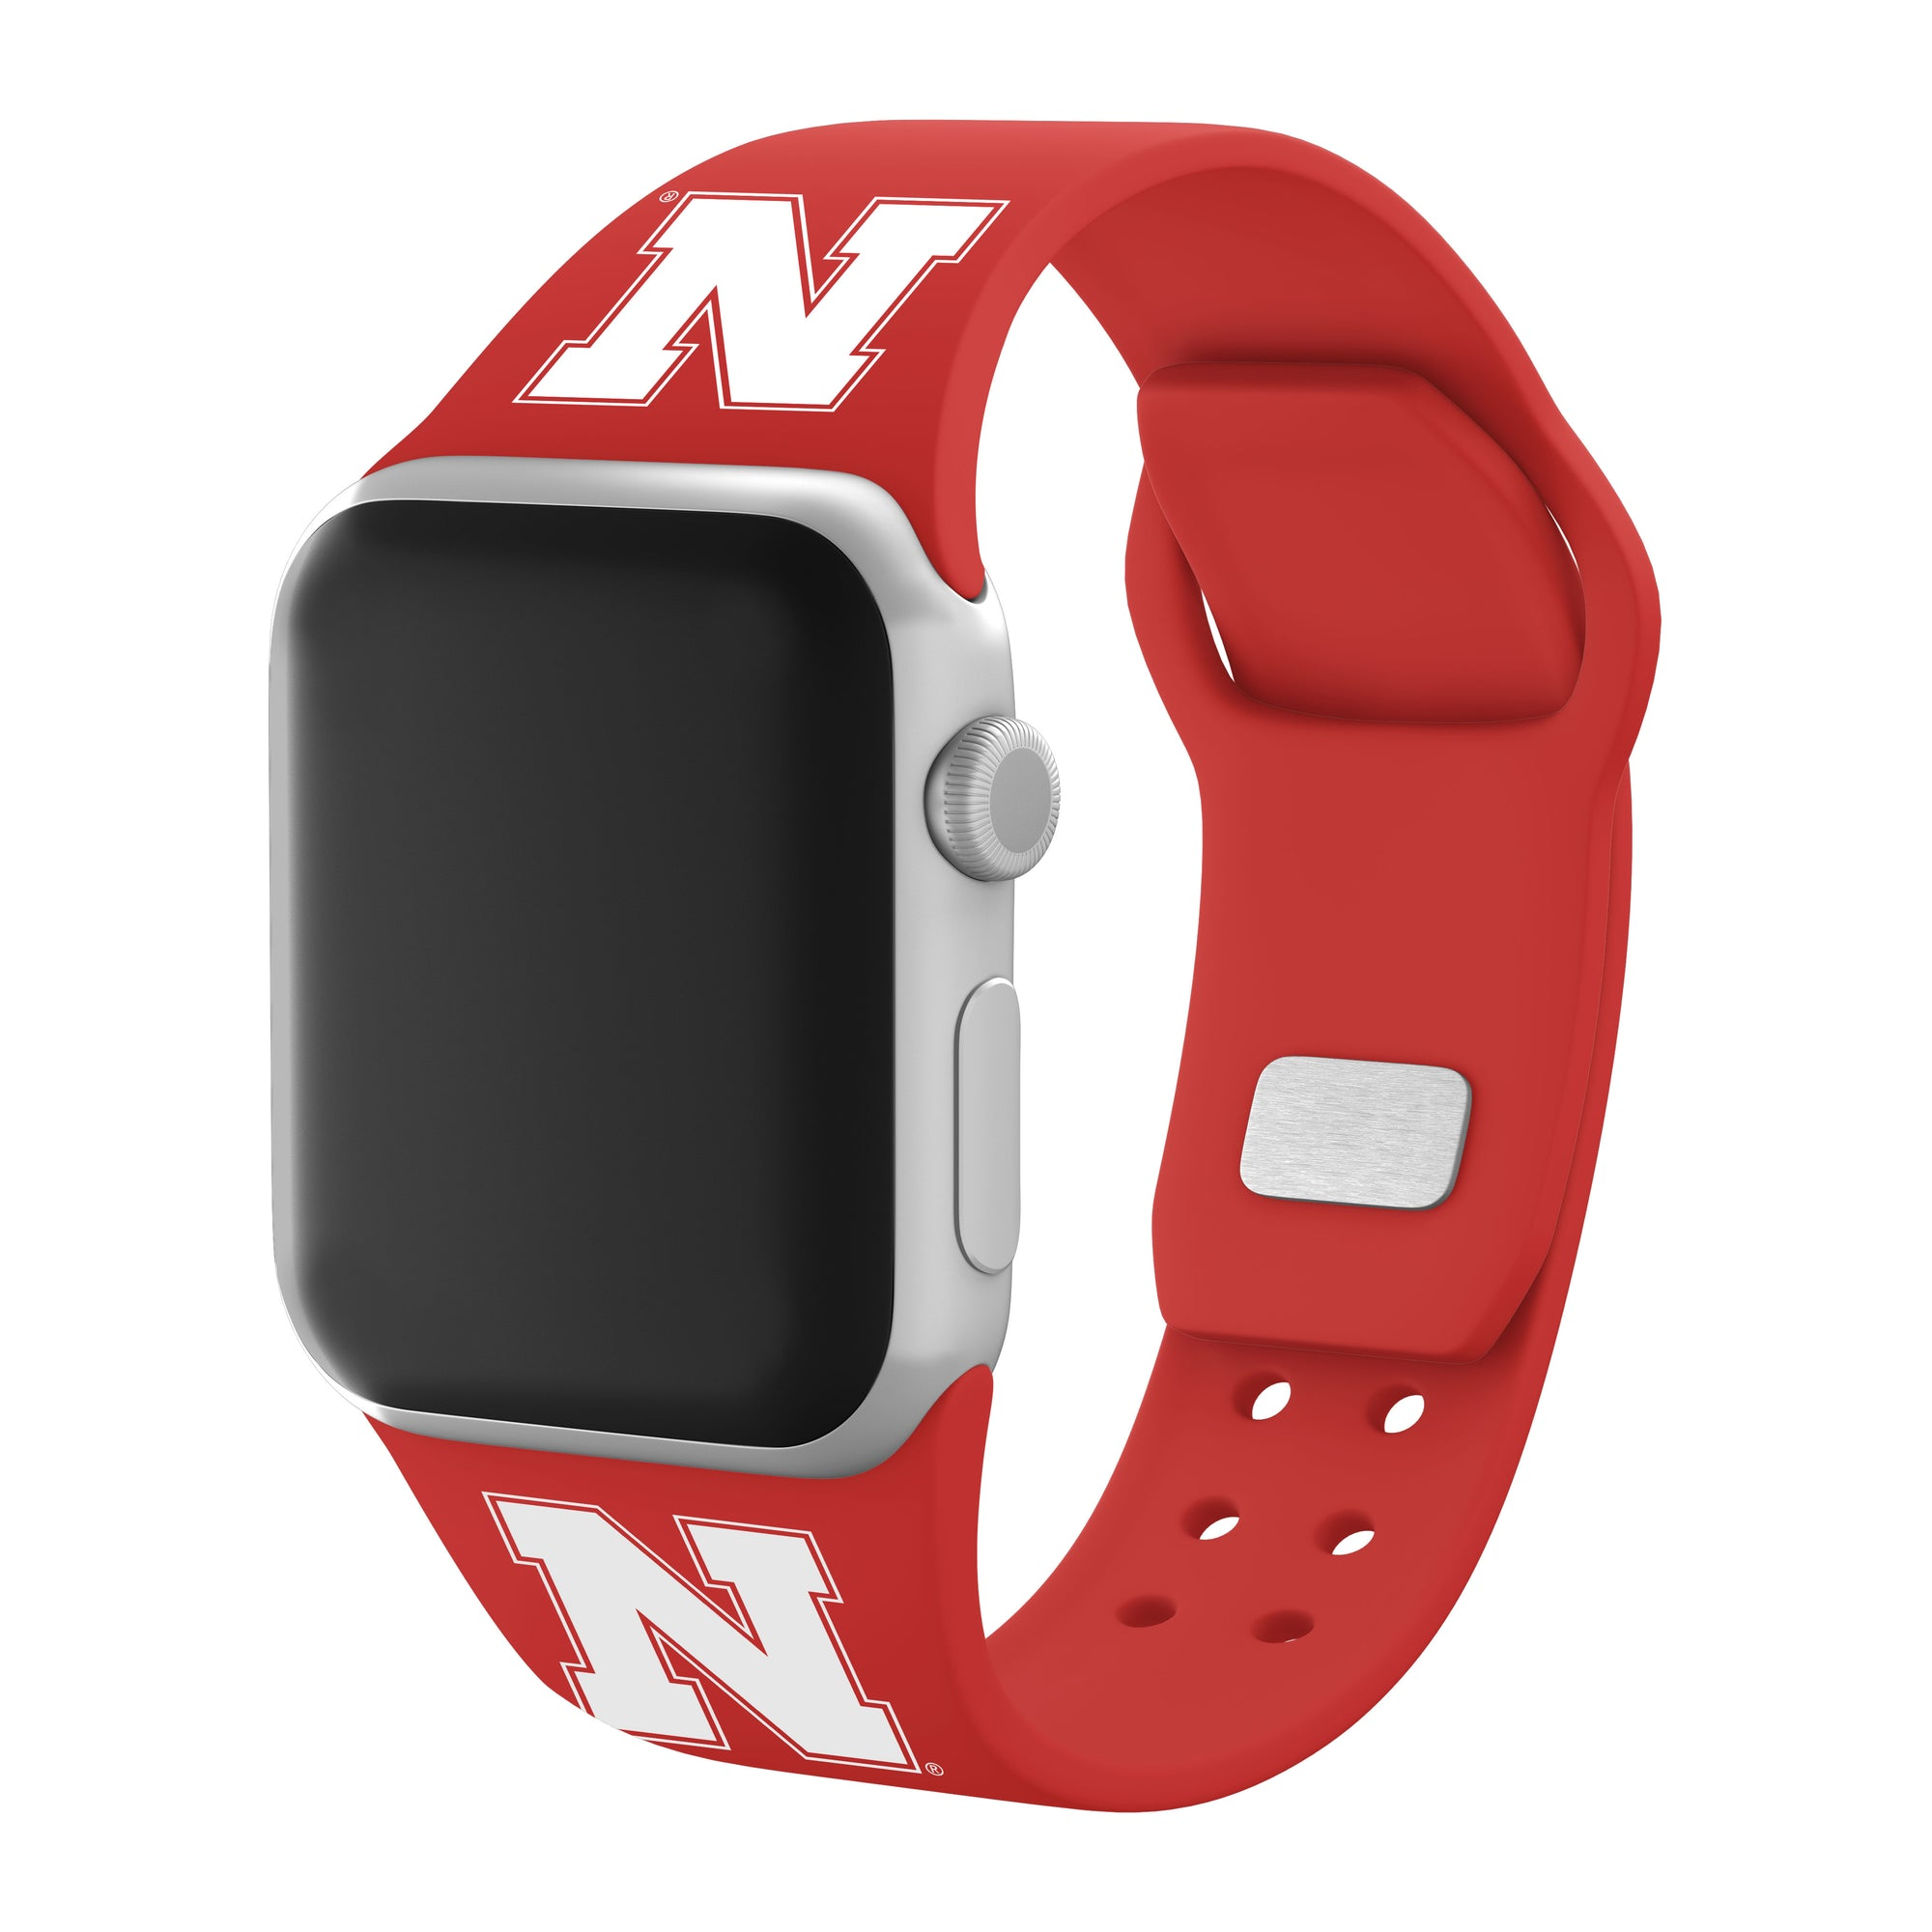 Nebraska Huskers Apple Watch Band - Red - Affinity Bands